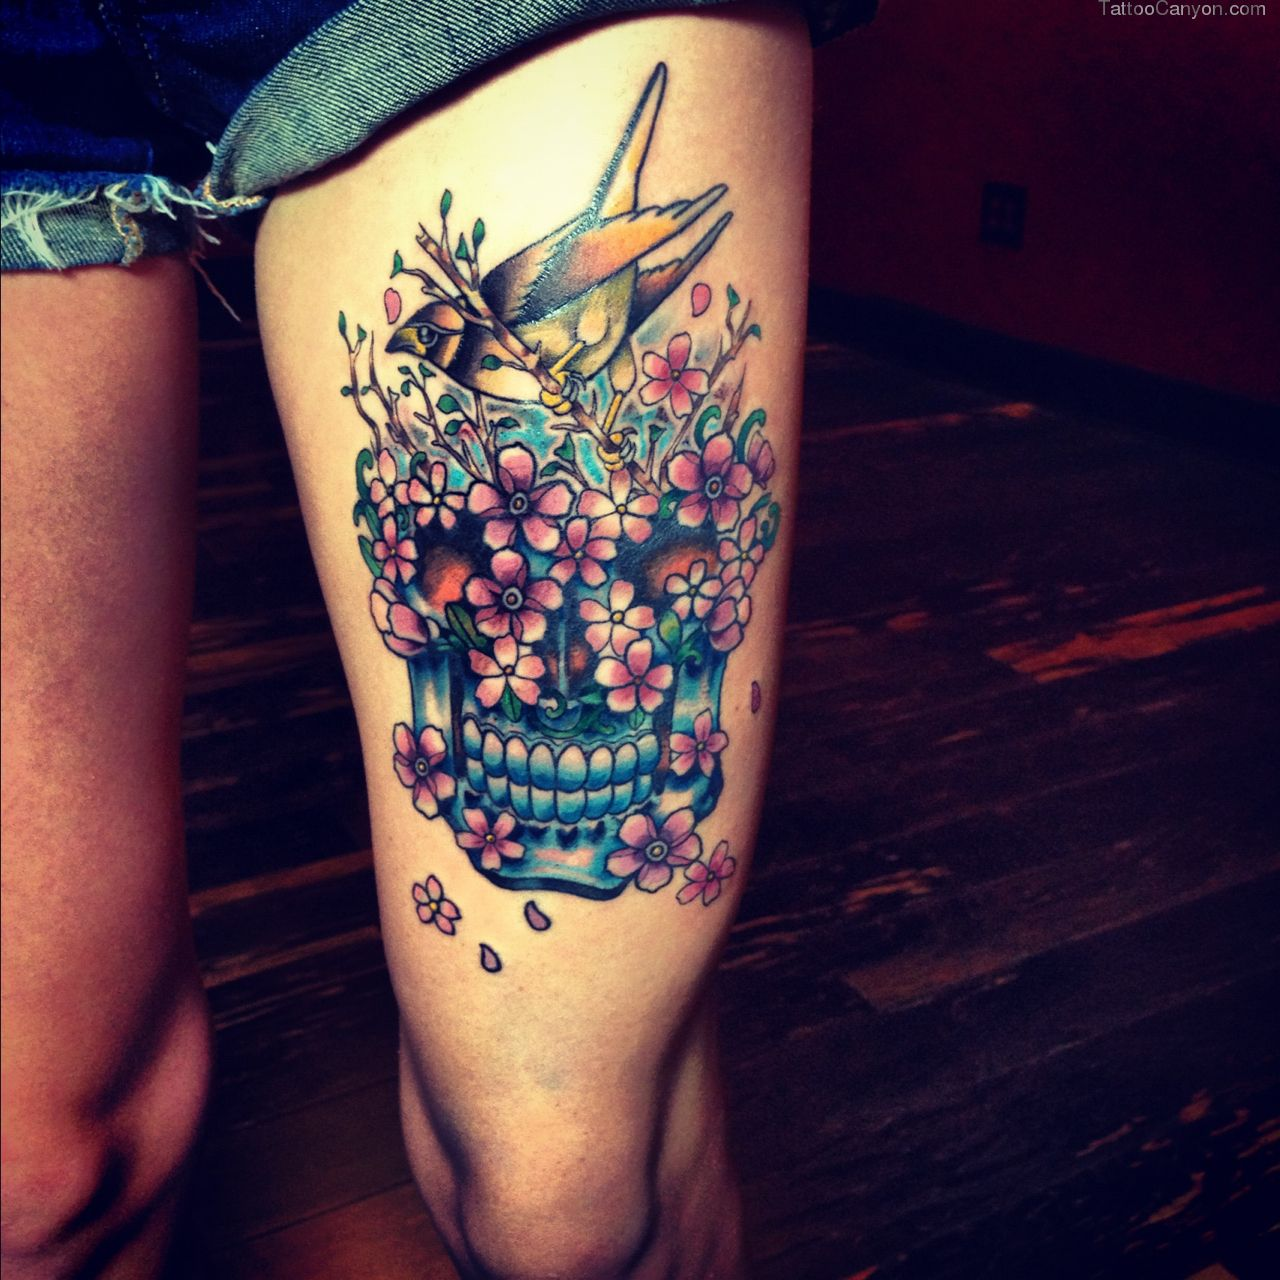 35 amazing tattoos for women with meaning - 35 Best Leg Tattoo Designs For Women